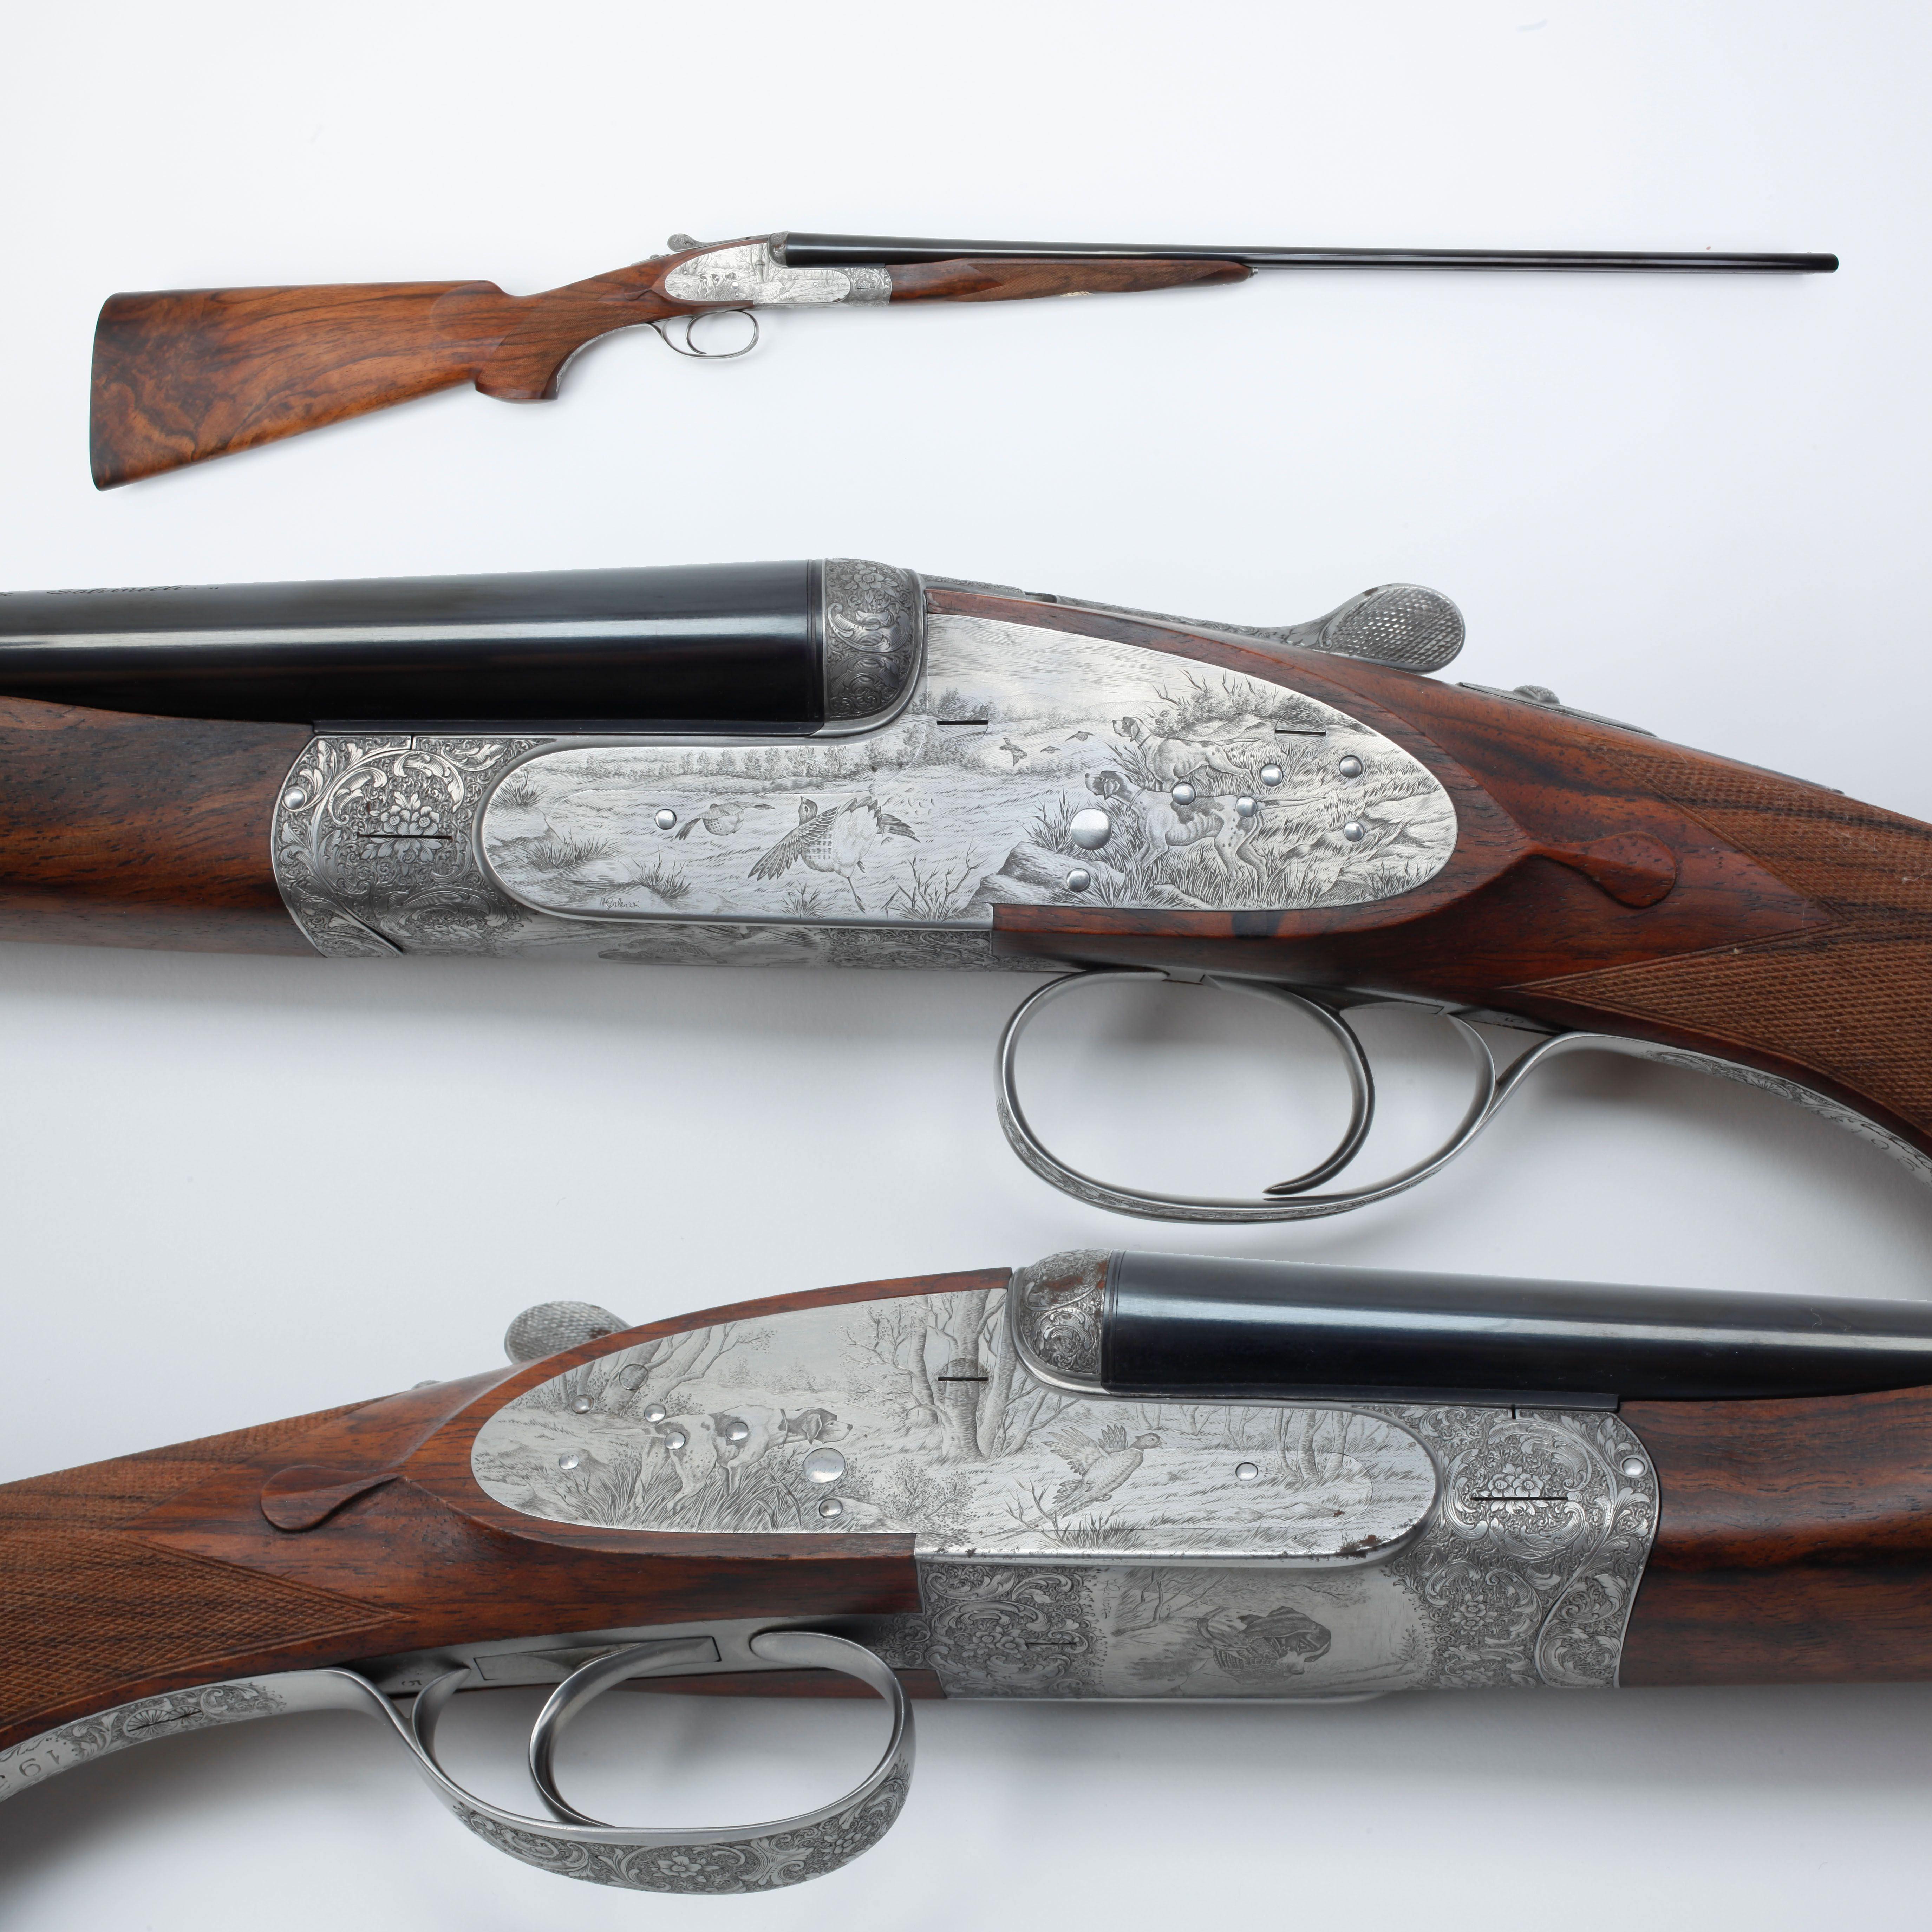 Bulino Engraved Side-By-Side Shotgun - This .410 ga was made by FAMARS (Fabbrica Armi d'Abbiatico e Salvinelli), an Italian gun manufacturer known for its craftsmanship & fine engraving. A single FAMARS requires hundreds, sometimes thousands, of man-hours to complete. The firm makes no more than 110 a year, all of which are specially commissioned. The GOTD also features one of the most time consuming engraving processes, bulino engraving, by artist Angelo Galeazzi with a pheasant hunting…